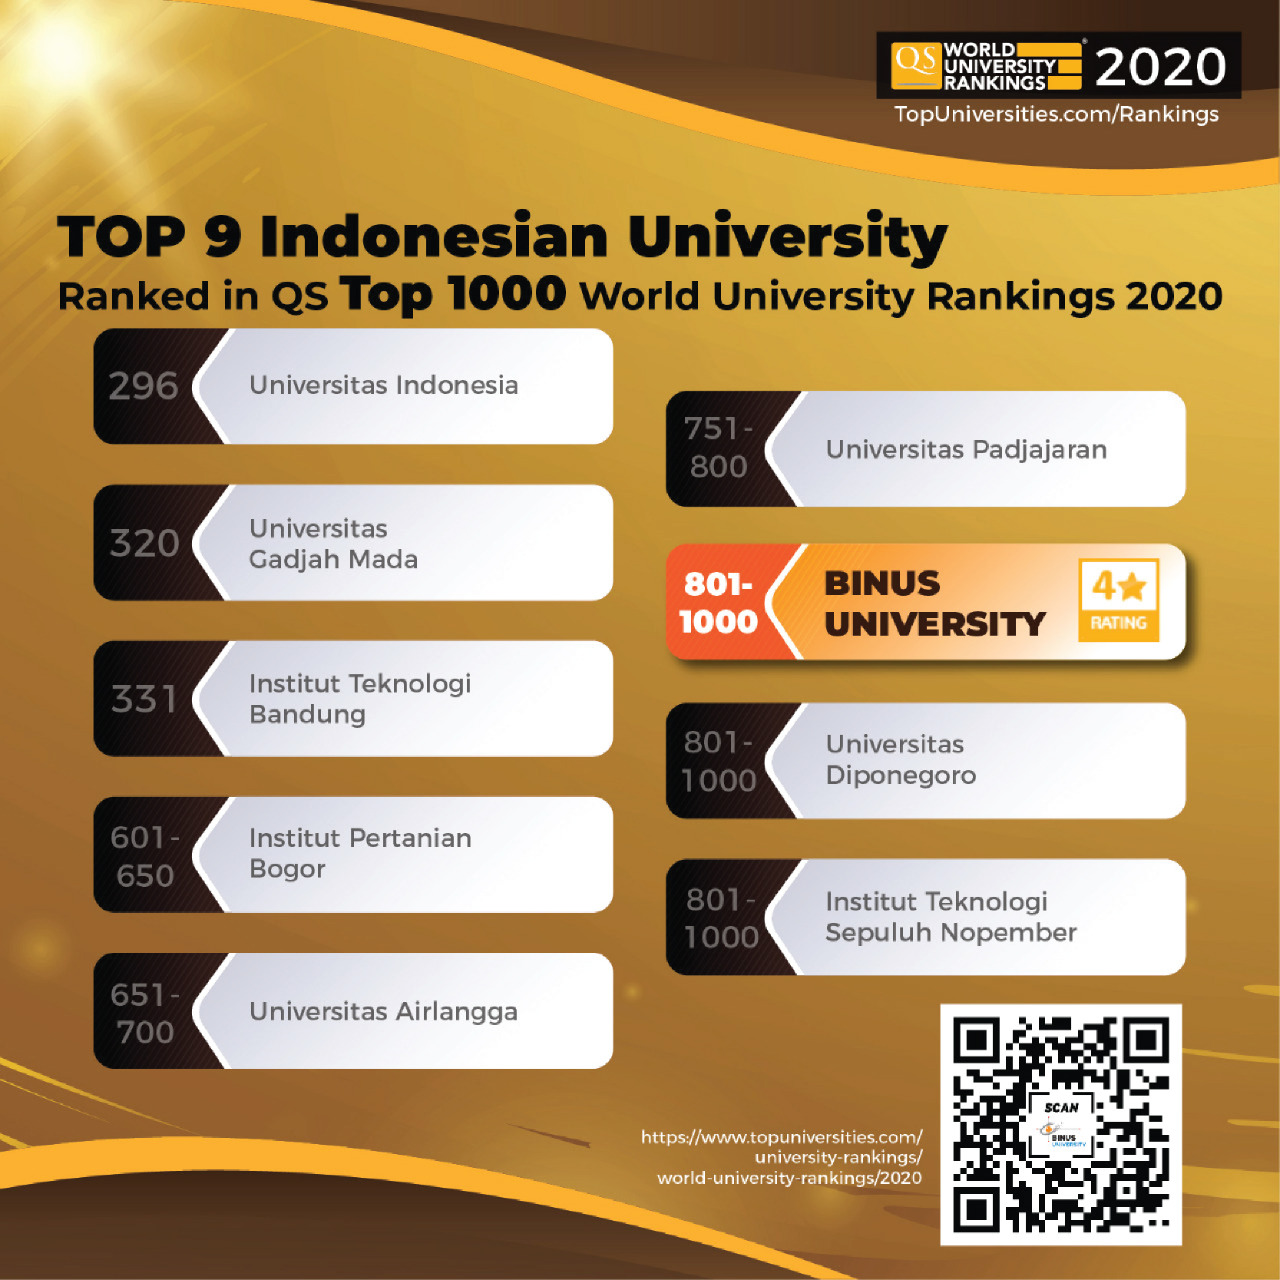 Peringkat Top 1.000 QS World University Rankings 2020,  Wujud Komitmen BINUS UNIVERSITY Bagi Nusantara.